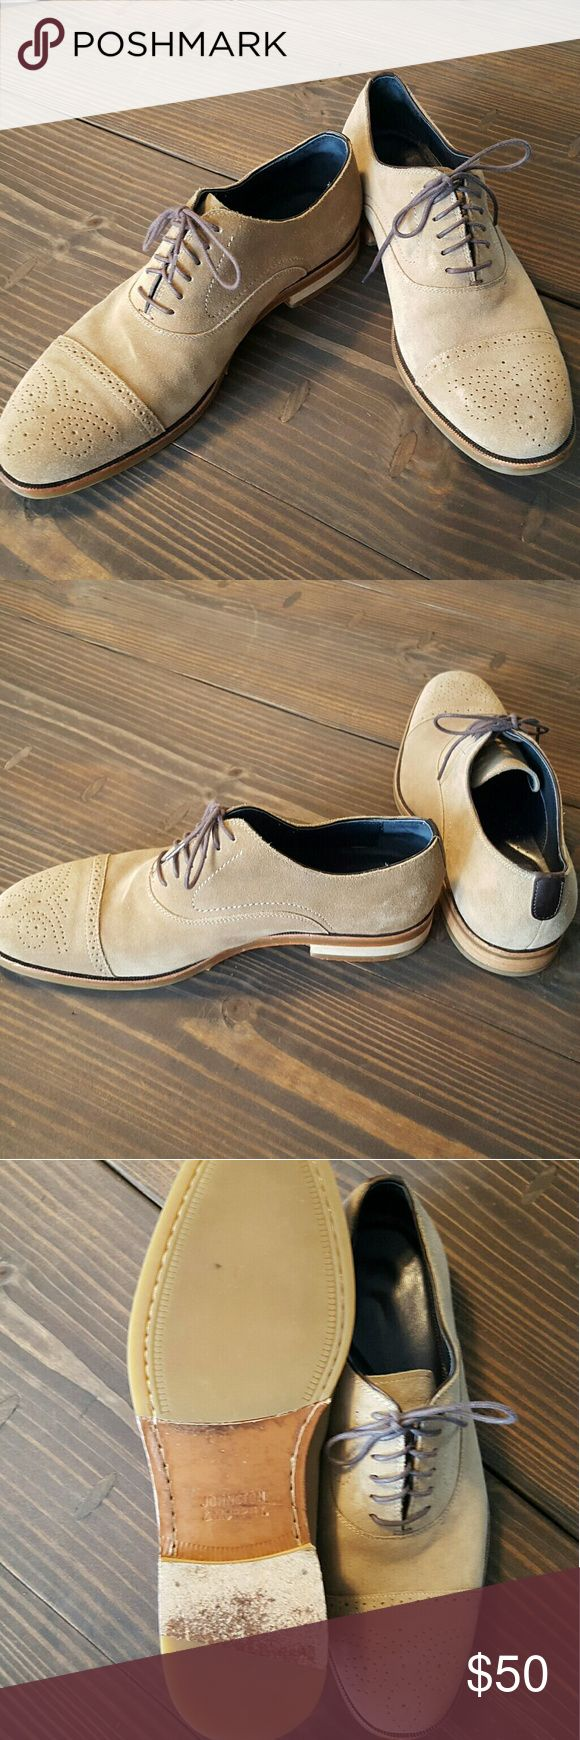 Johnston & Murphy Suede Shoes These lightly worn Johnston & Murphy suede shoes are a stylish addition to any wardrobe! *Note, there is a slight color tone difference between the two shoes. Johnston Murphy Shoes Oxfords & Derbys